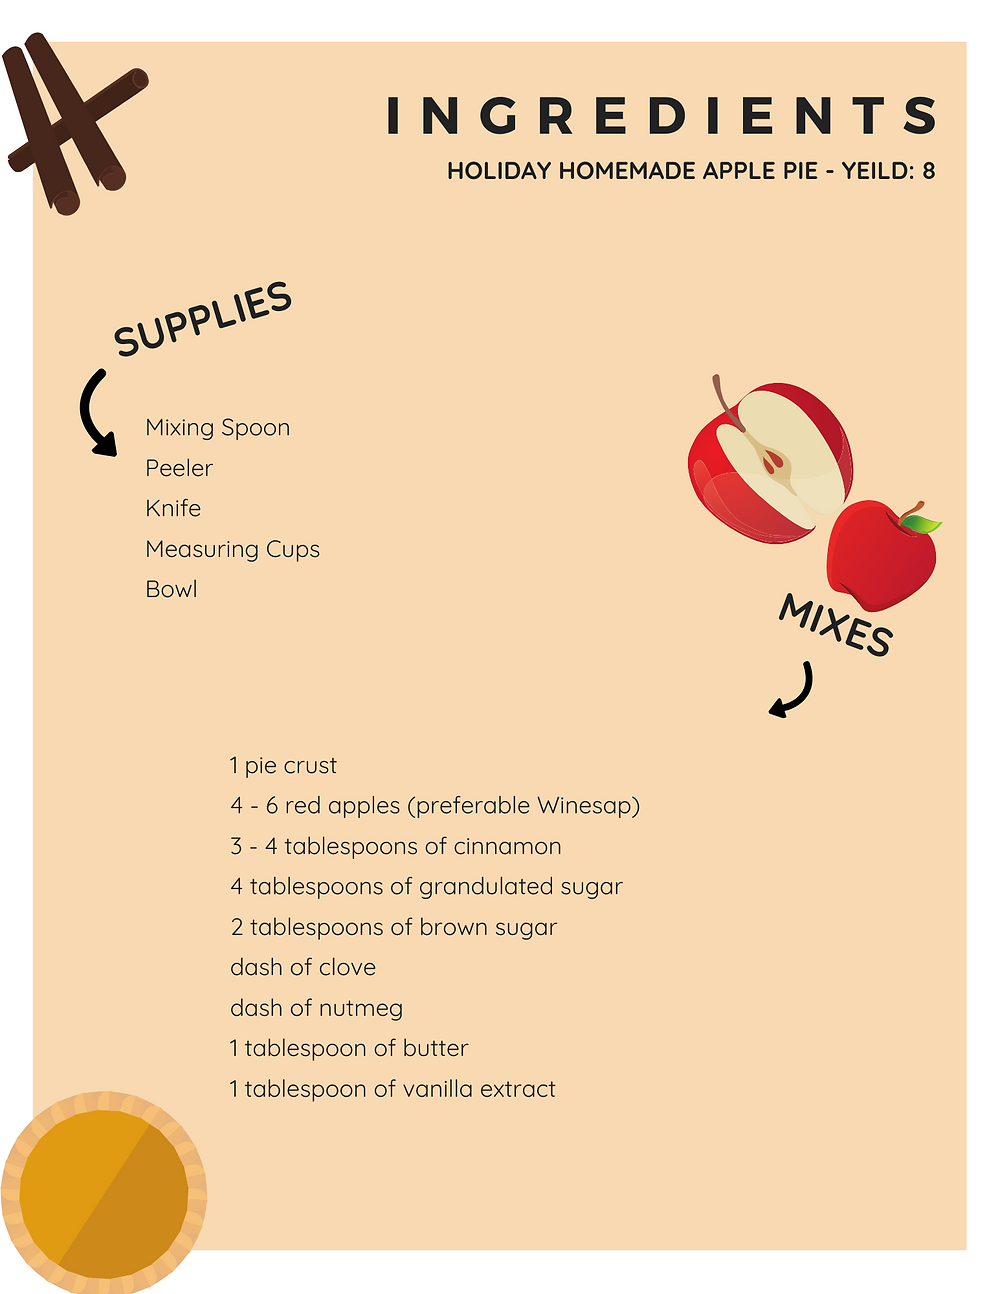 Ingredient List for holiday homemade apple pie